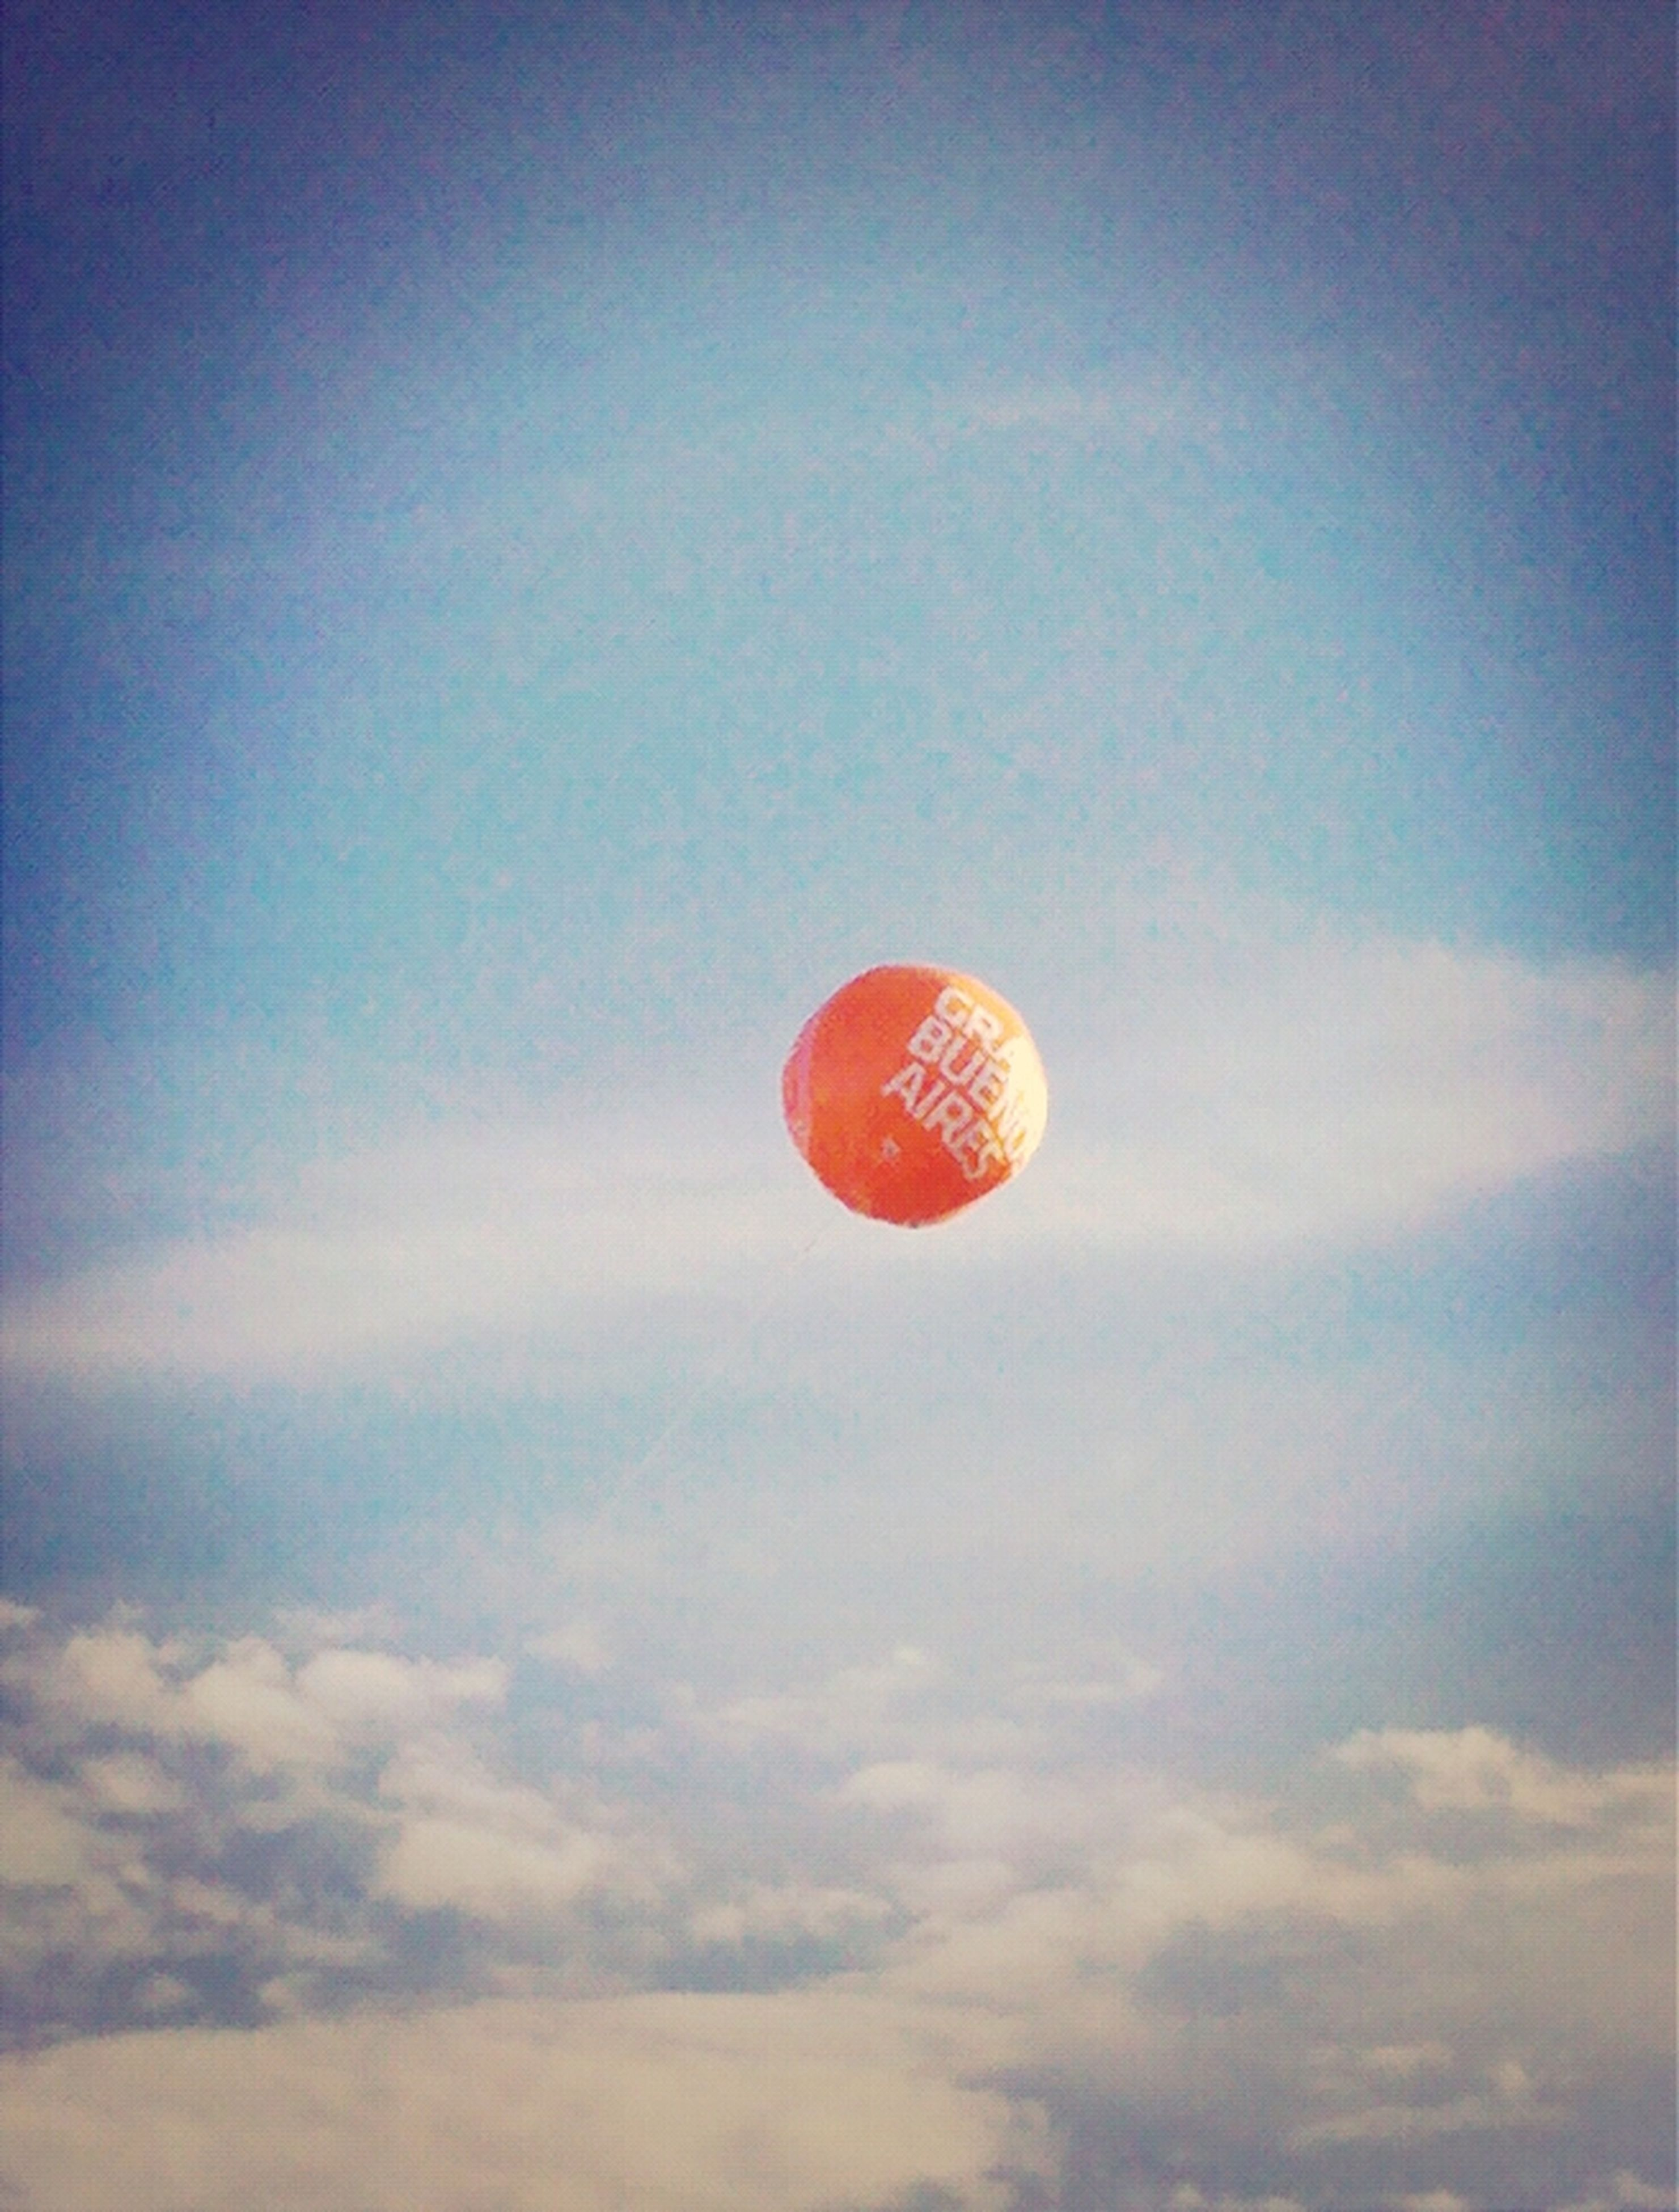 low angle view, sky, hot air balloon, circle, balloon, red, mid-air, scenics, copy space, tranquility, sun, beauty in nature, nature, tranquil scene, outdoors, cloud - sky, no people, parachute, sphere, sunset